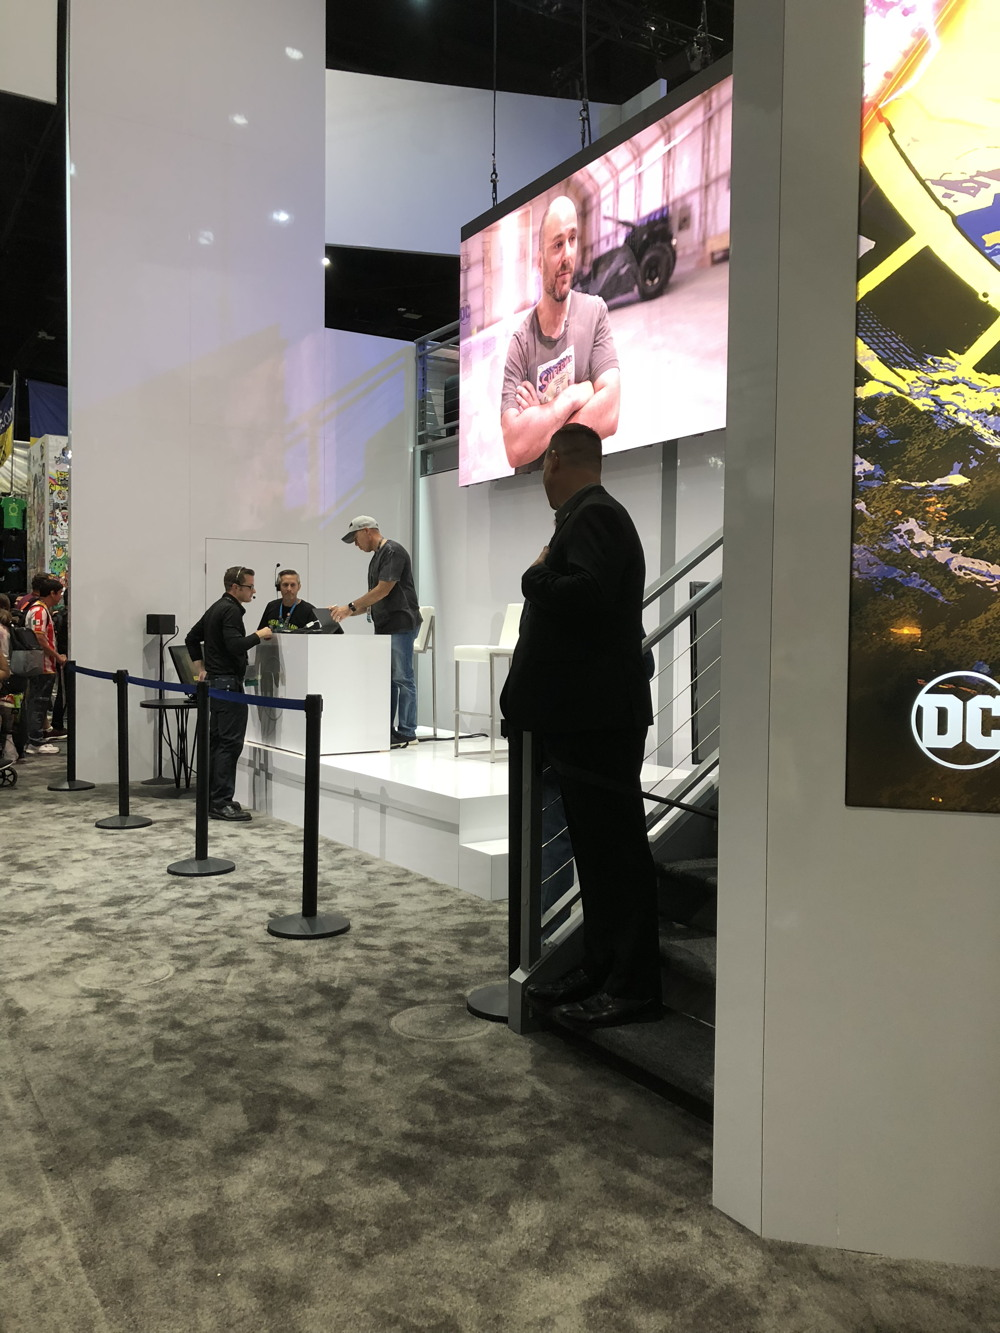 dc booth sdcc 2019